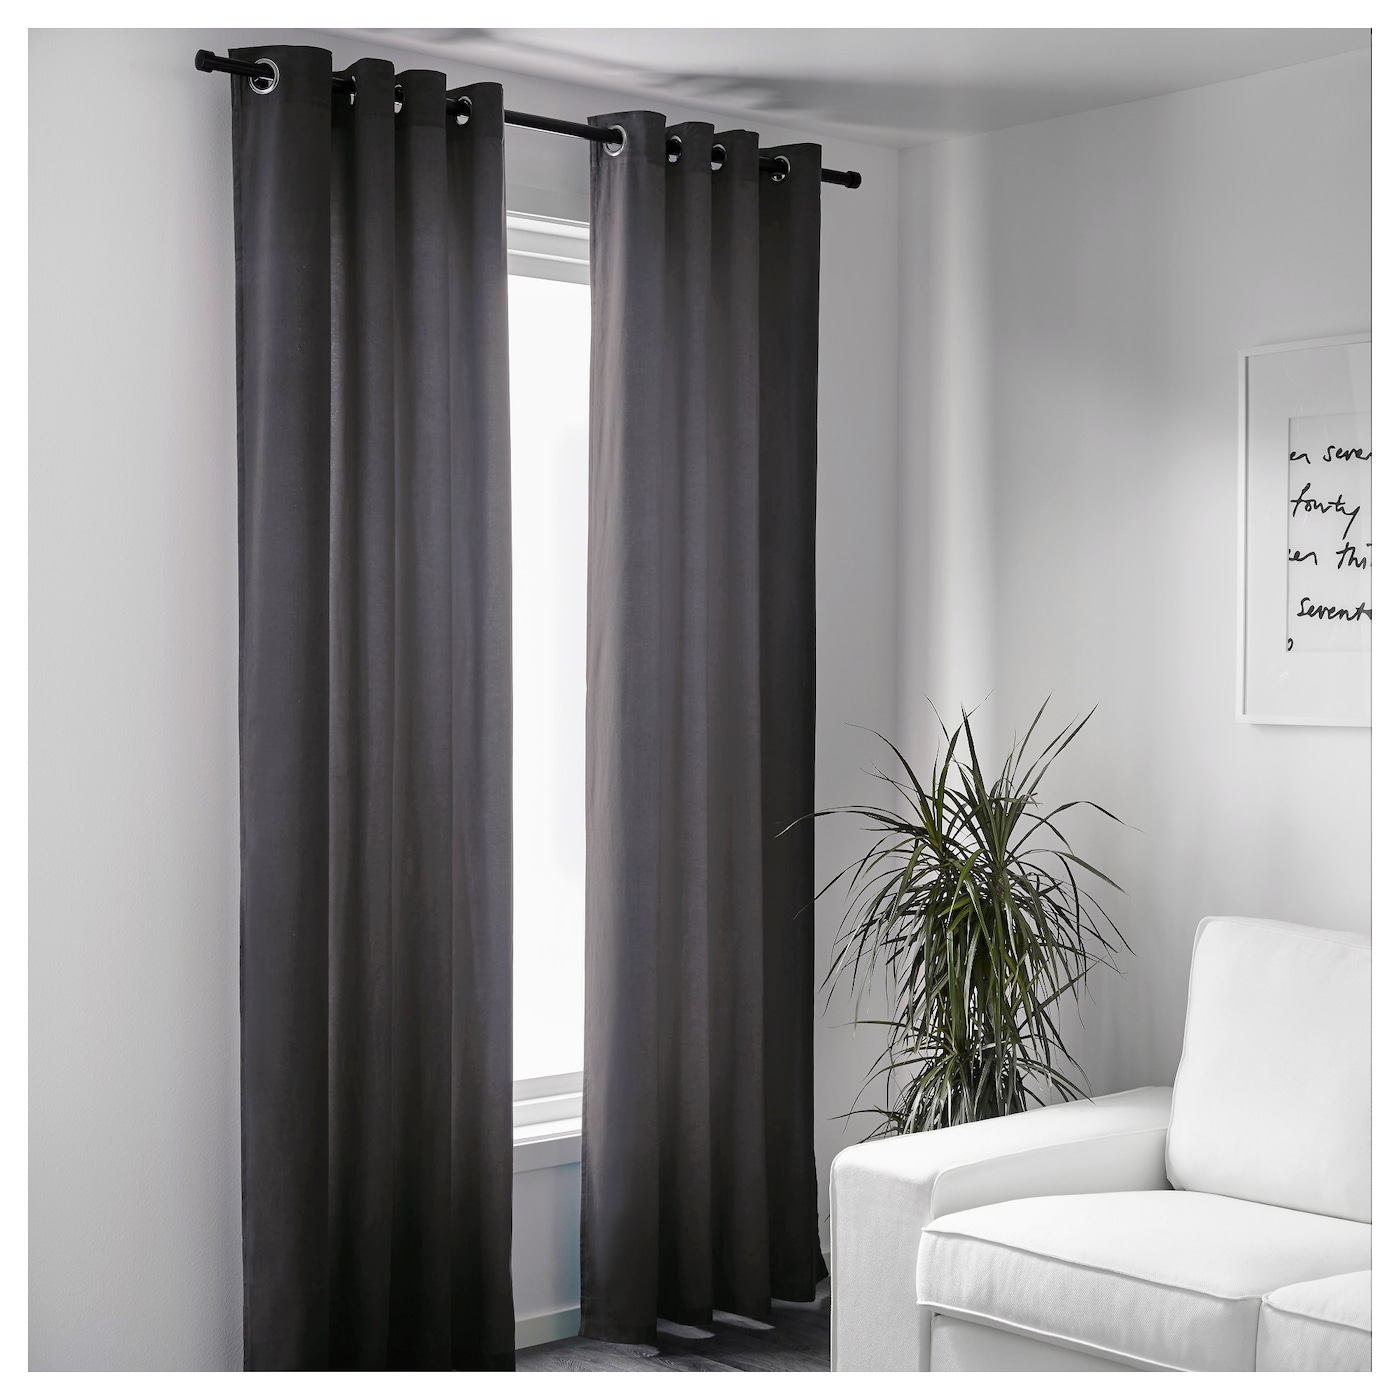 and velvet tfile trends white appealing uncategorized popular pic design ever fresh curtain curtains cute of off